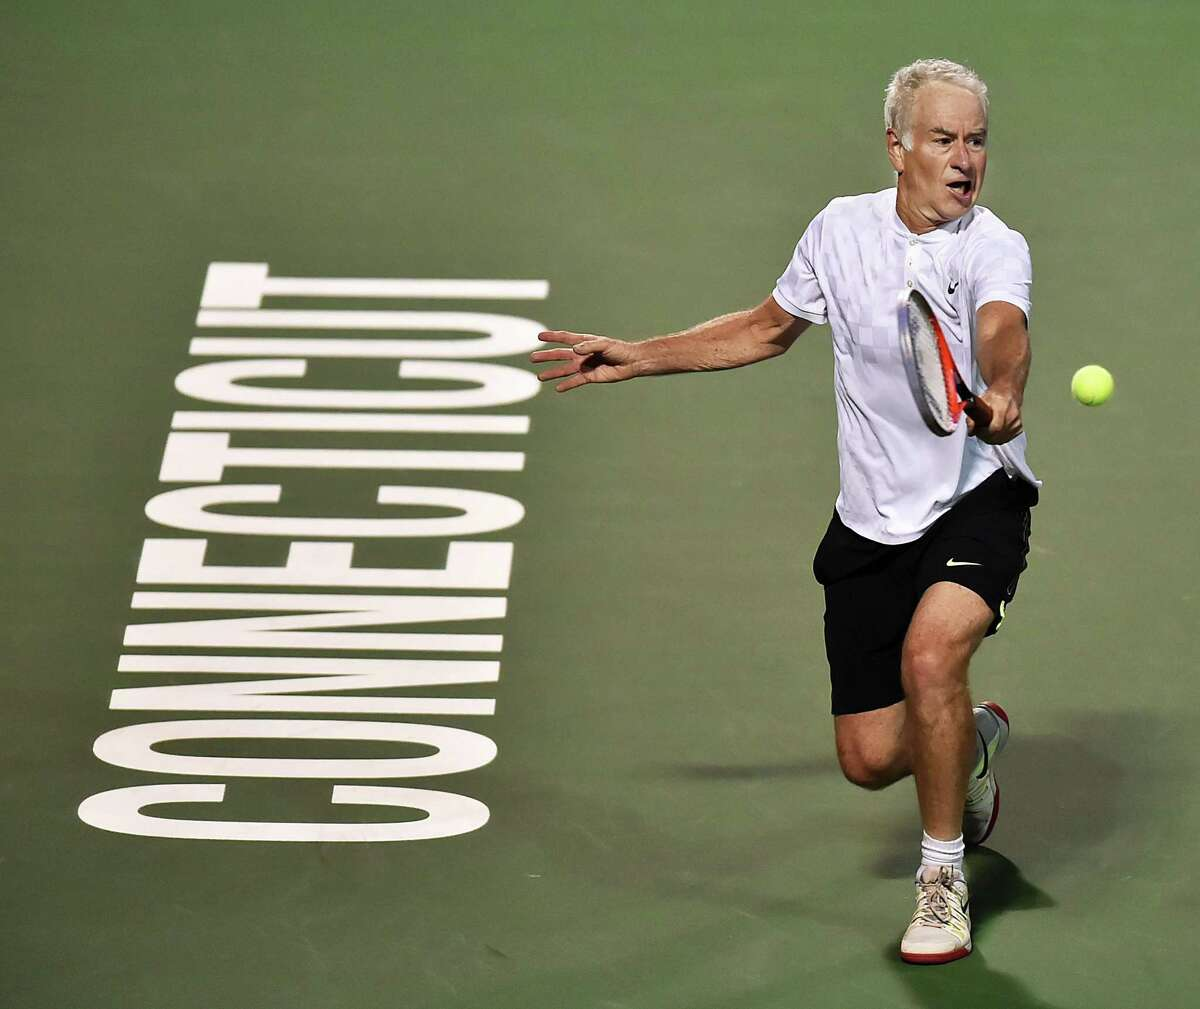 John McEnroe backhands a return to James Blake on Stadium Court Friday, August 24, 2018 in an Invesco Series QQQ Men's Legend championship match at the Connecticut Open at the Connecticut Tennis Center at Yale in New Haven. Blake won, 6-4.